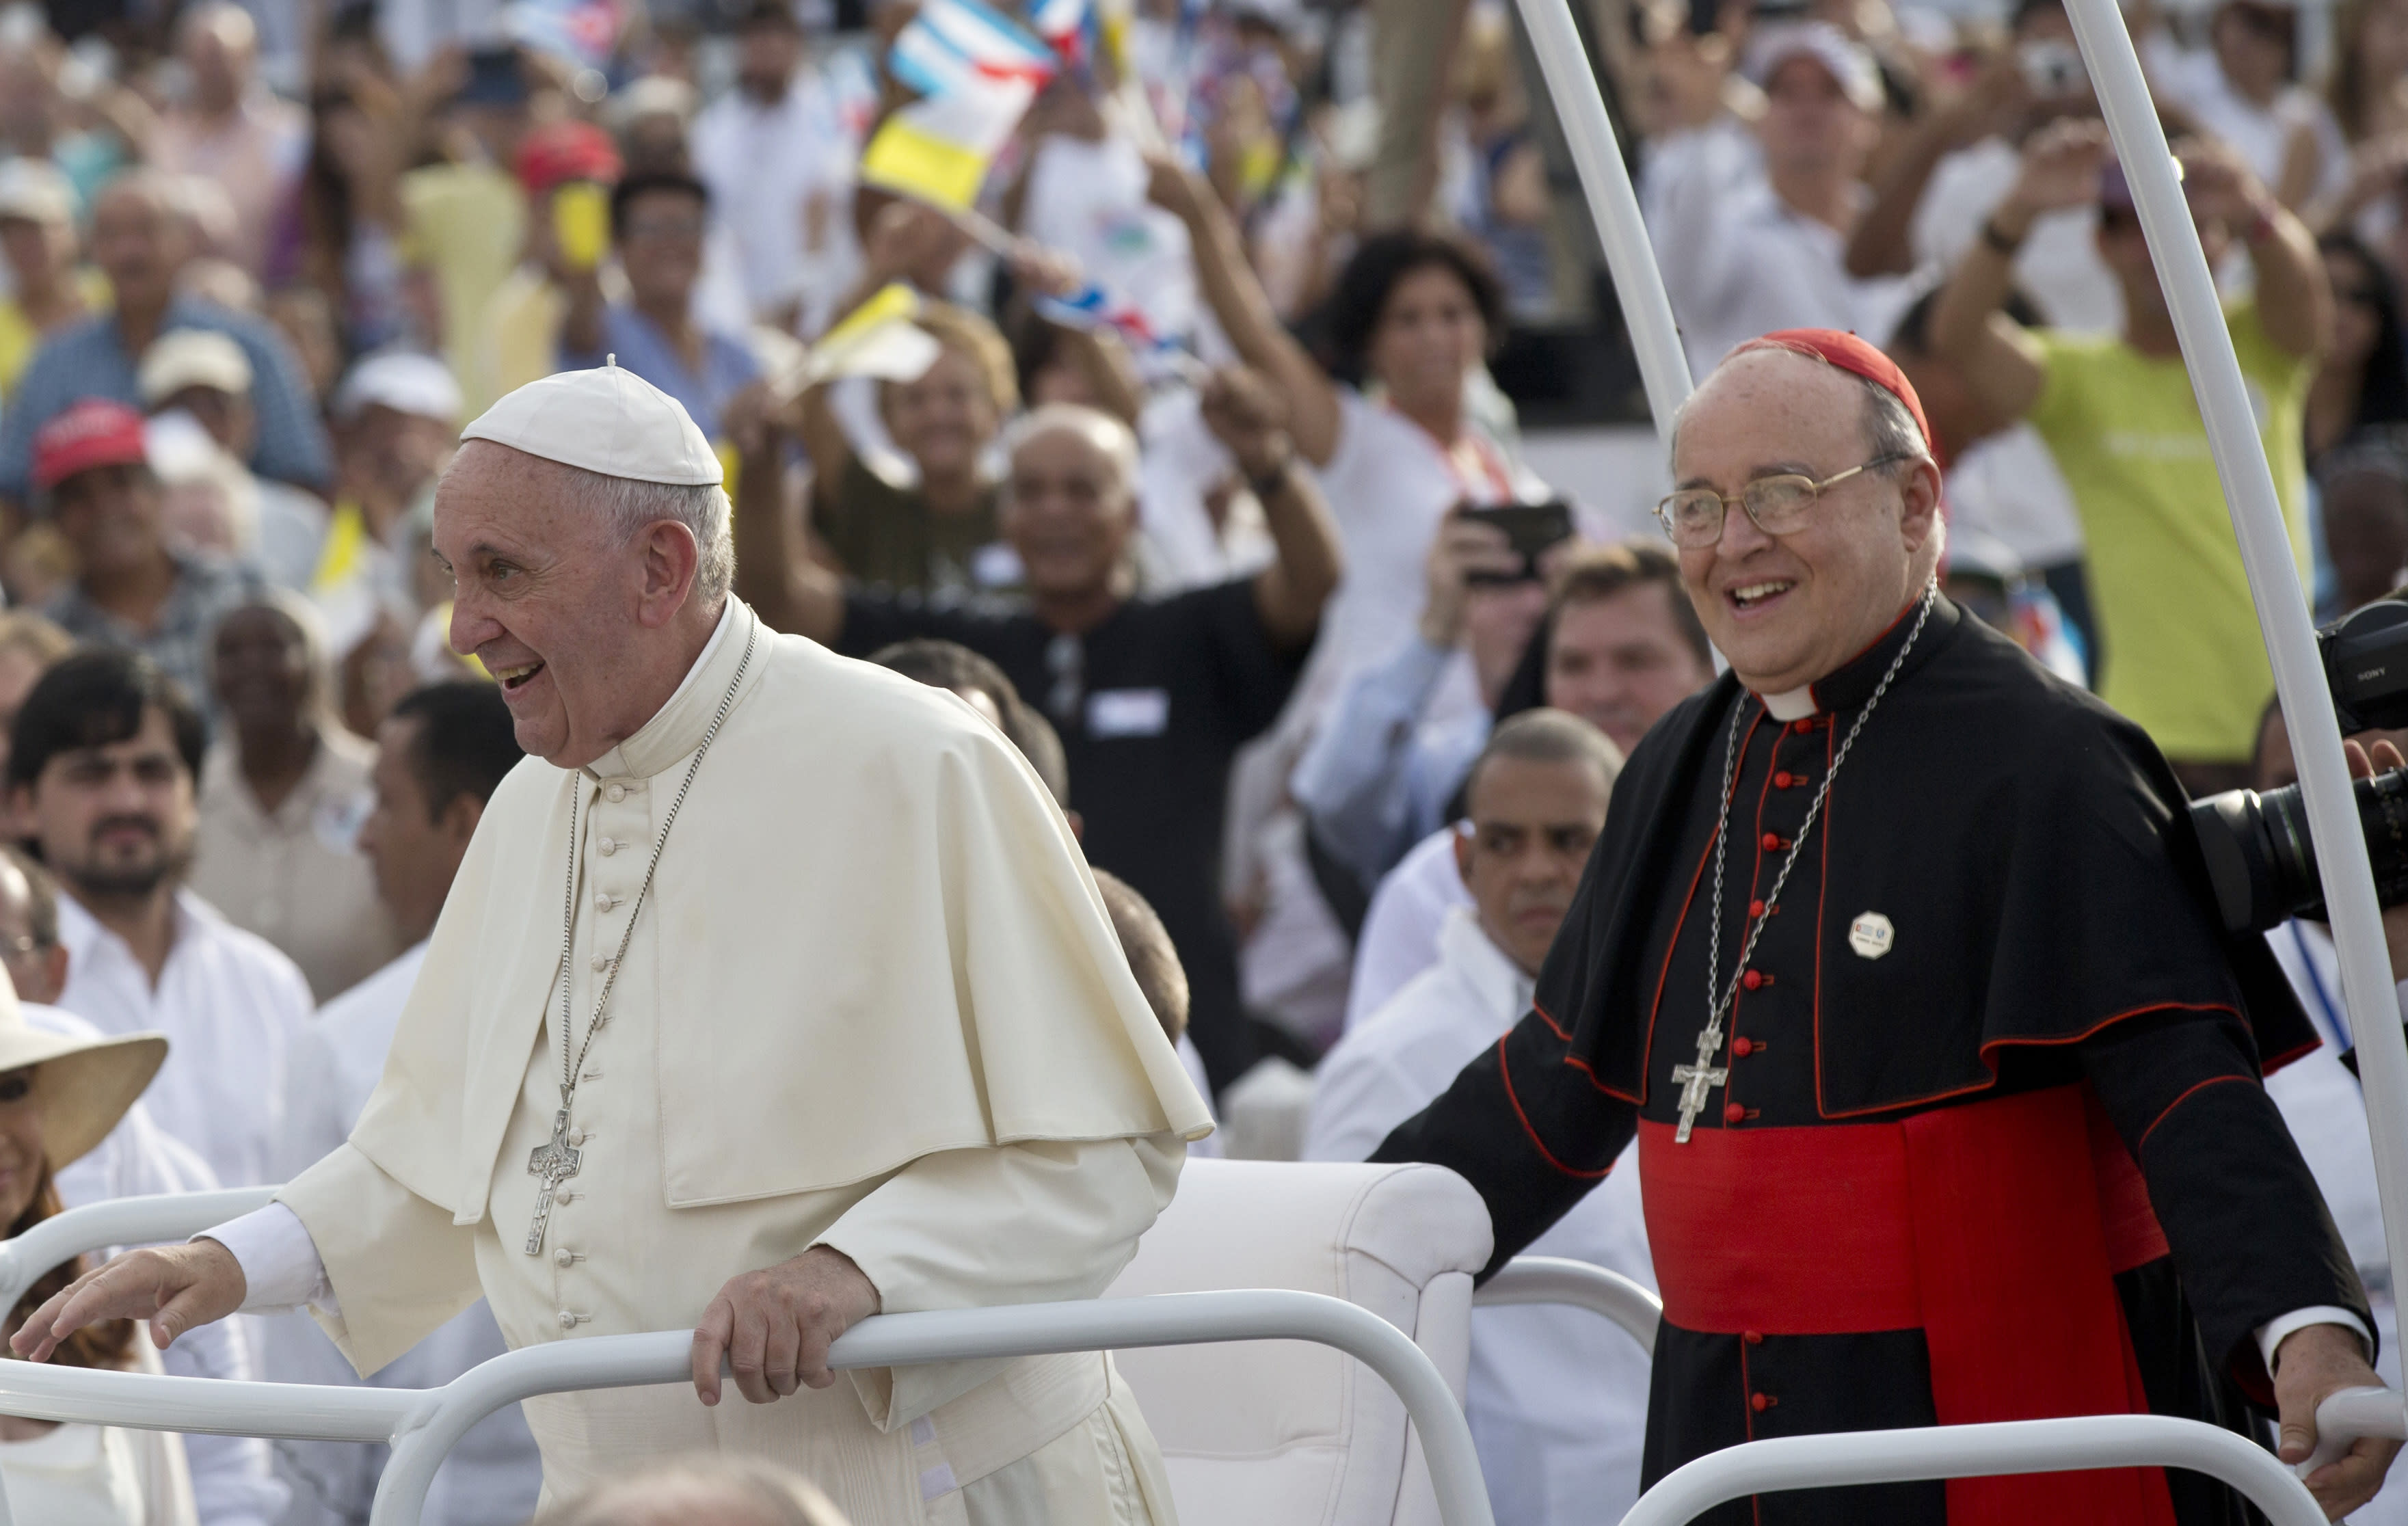 FILE - In this Sept. 20, 2015 file photo, Cuba's Cardinal Jaime Ortega, right, accompanies Pope Francis in the popemobile as they arrive for Mass at Revolution Plaza in Havana. Cuba's Roman Catholic Church said Friday, July 26, 2019, the former archbishop of Havana who helped organize the first papal visit to communist Cuba has died. Ortega was 83. (Ismael Francisco/Cubadebate Via AP File)